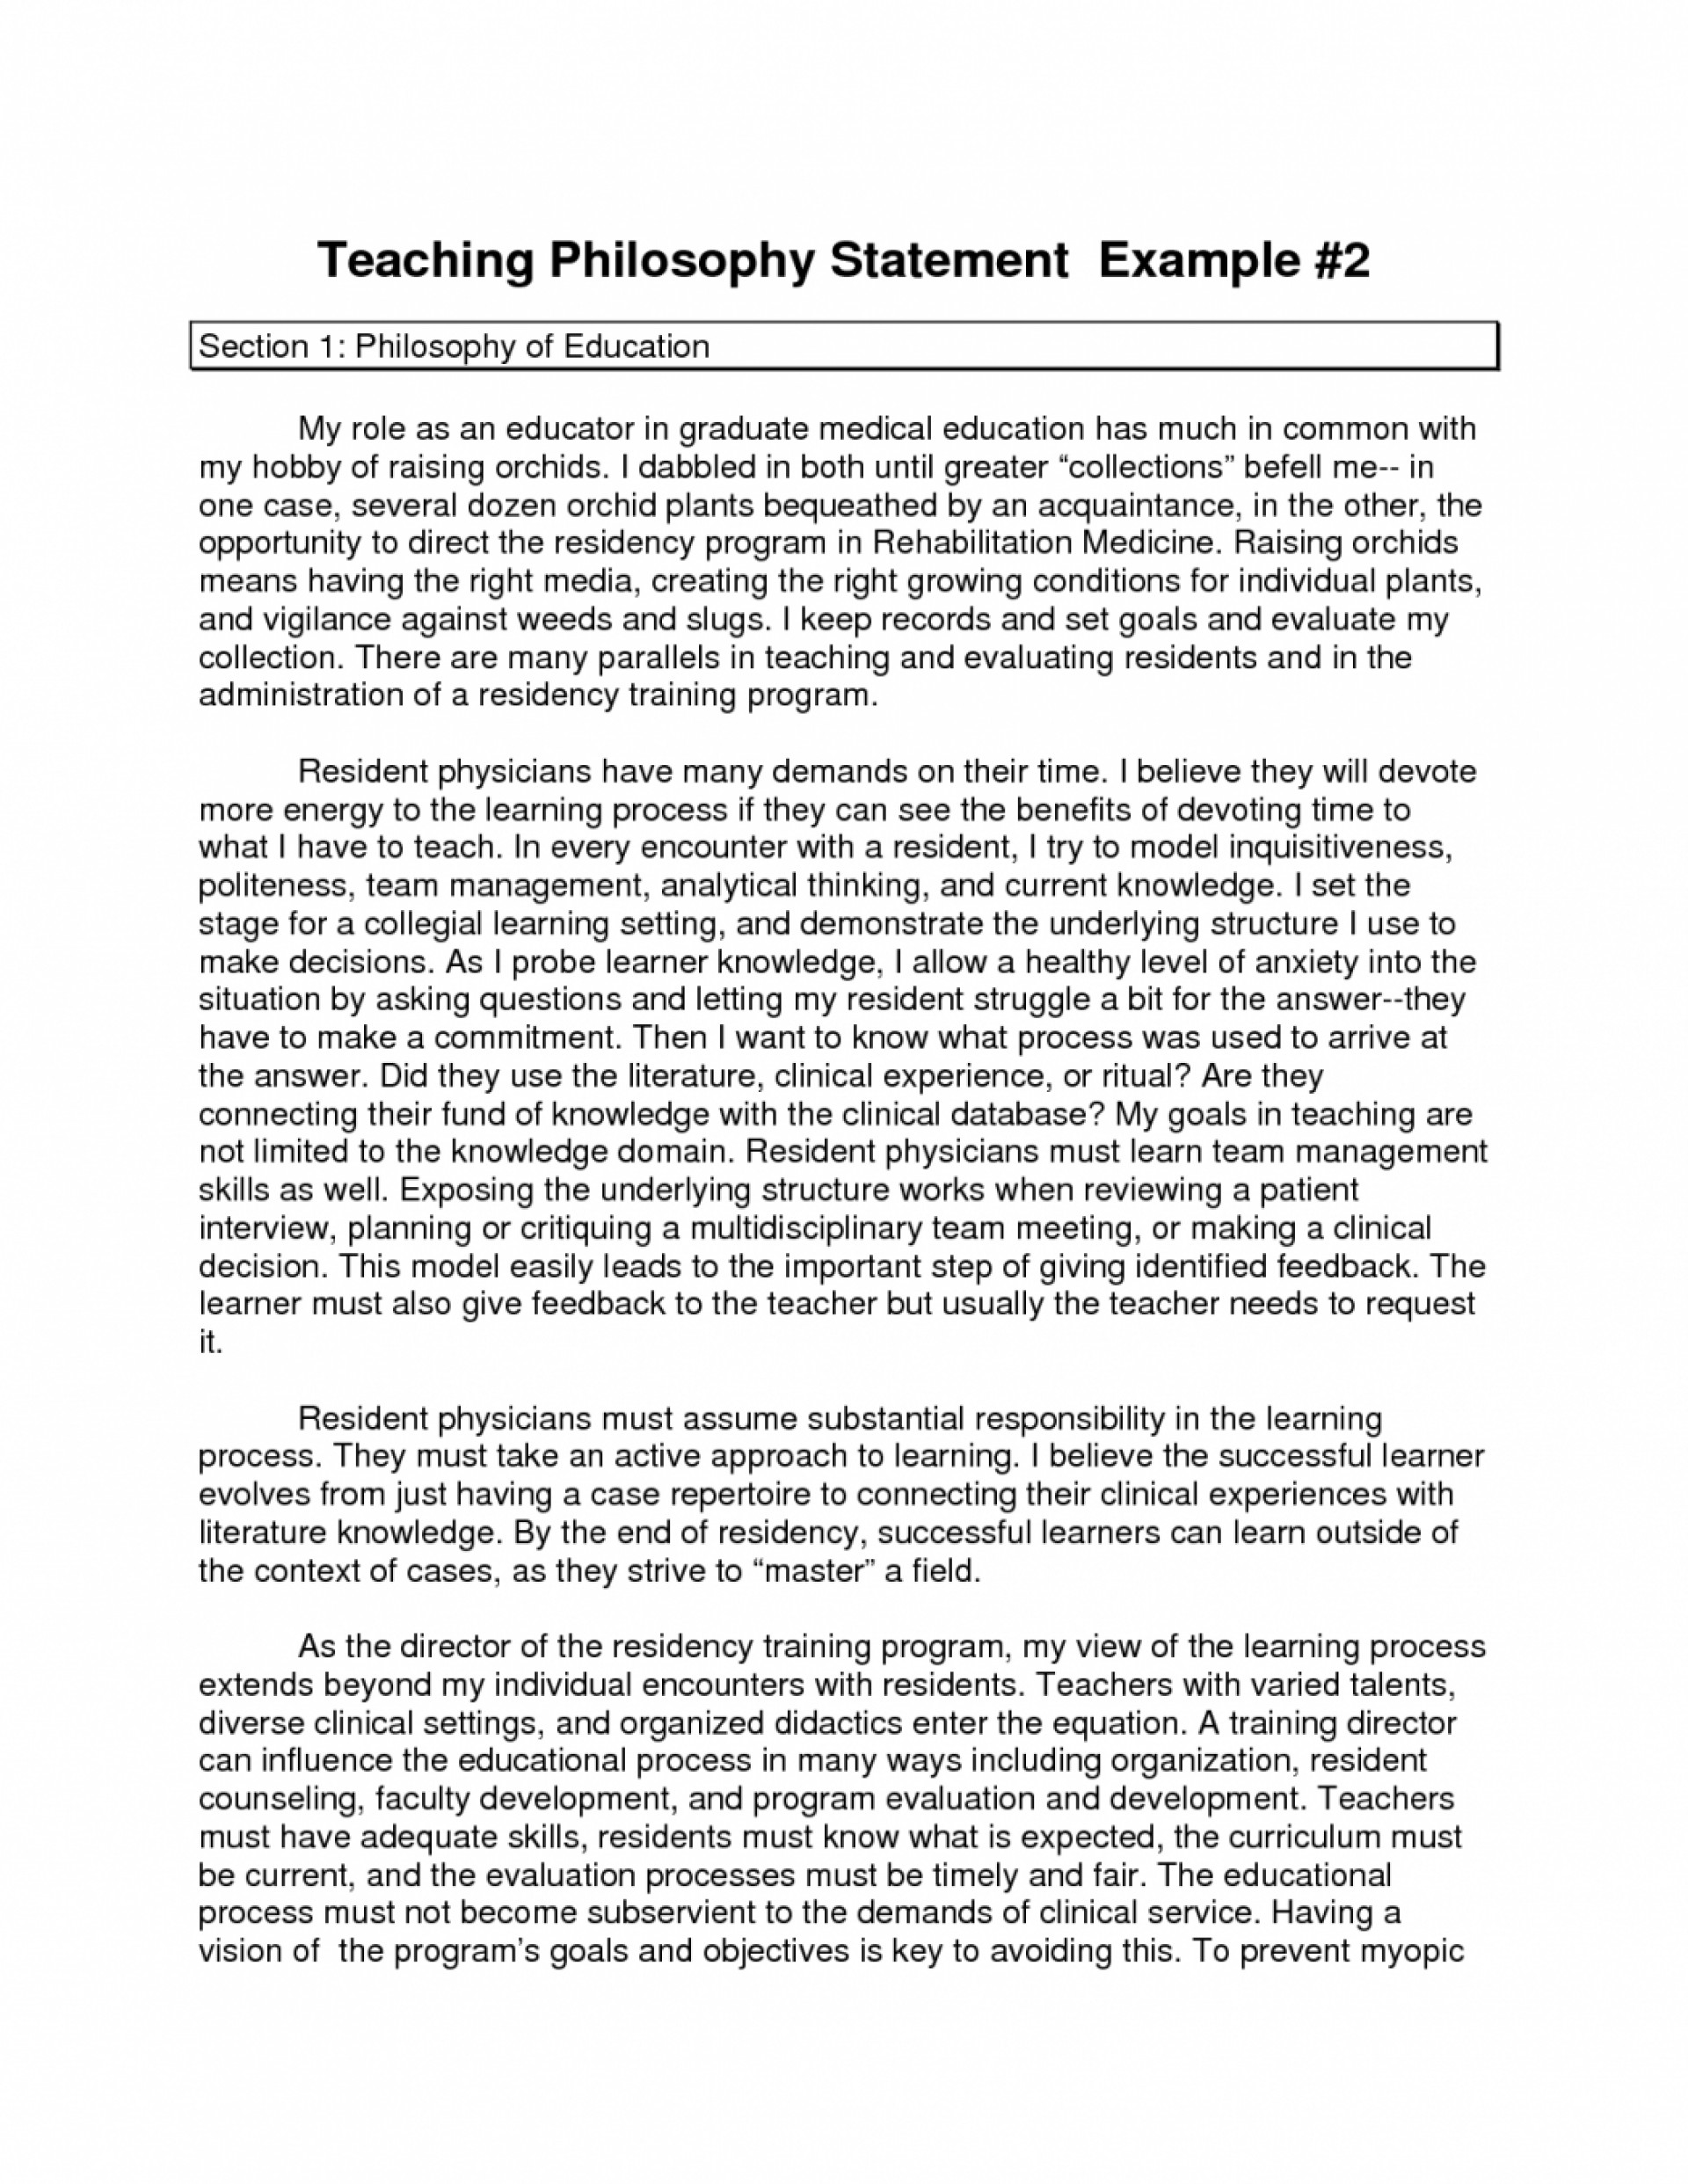 007 Exploratory Essay Example Definition Writing An Introduction Examples Statement Of Teaching Philosophy Mg5 Free Thesis Topics Research Remarkable Analysis 1920